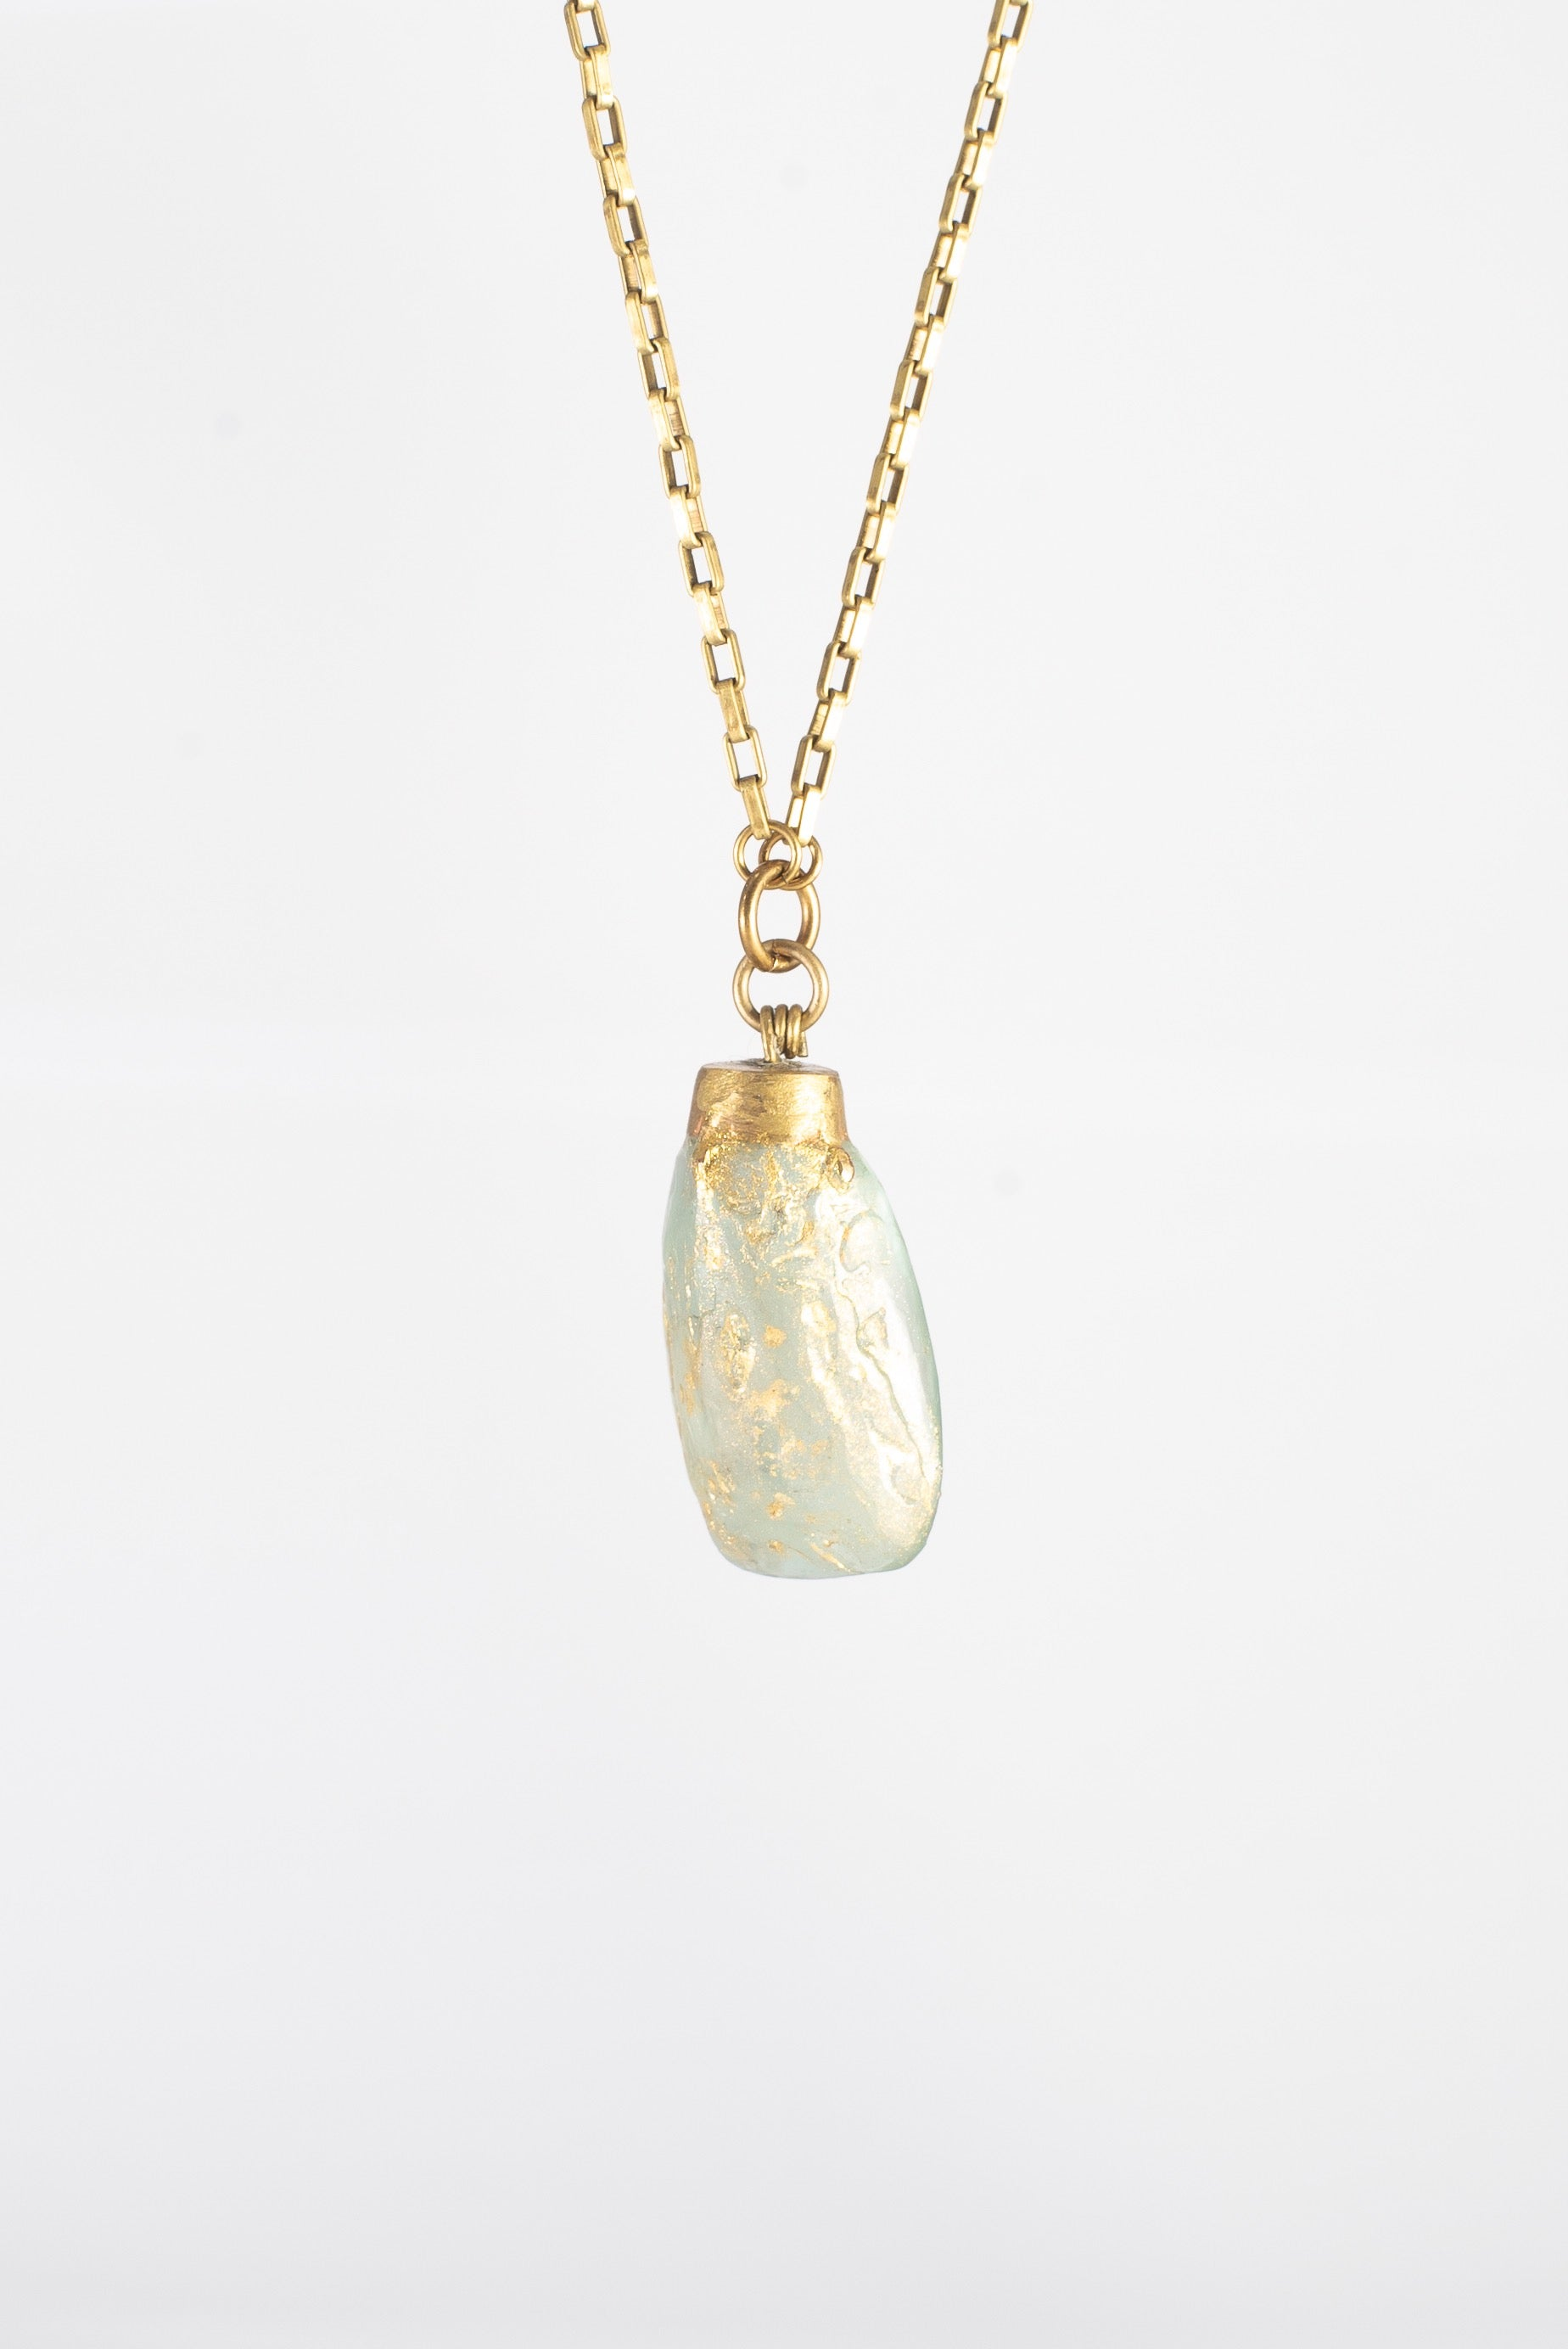 SALE SALE - FLUORITE with GOLD  DUST pendant